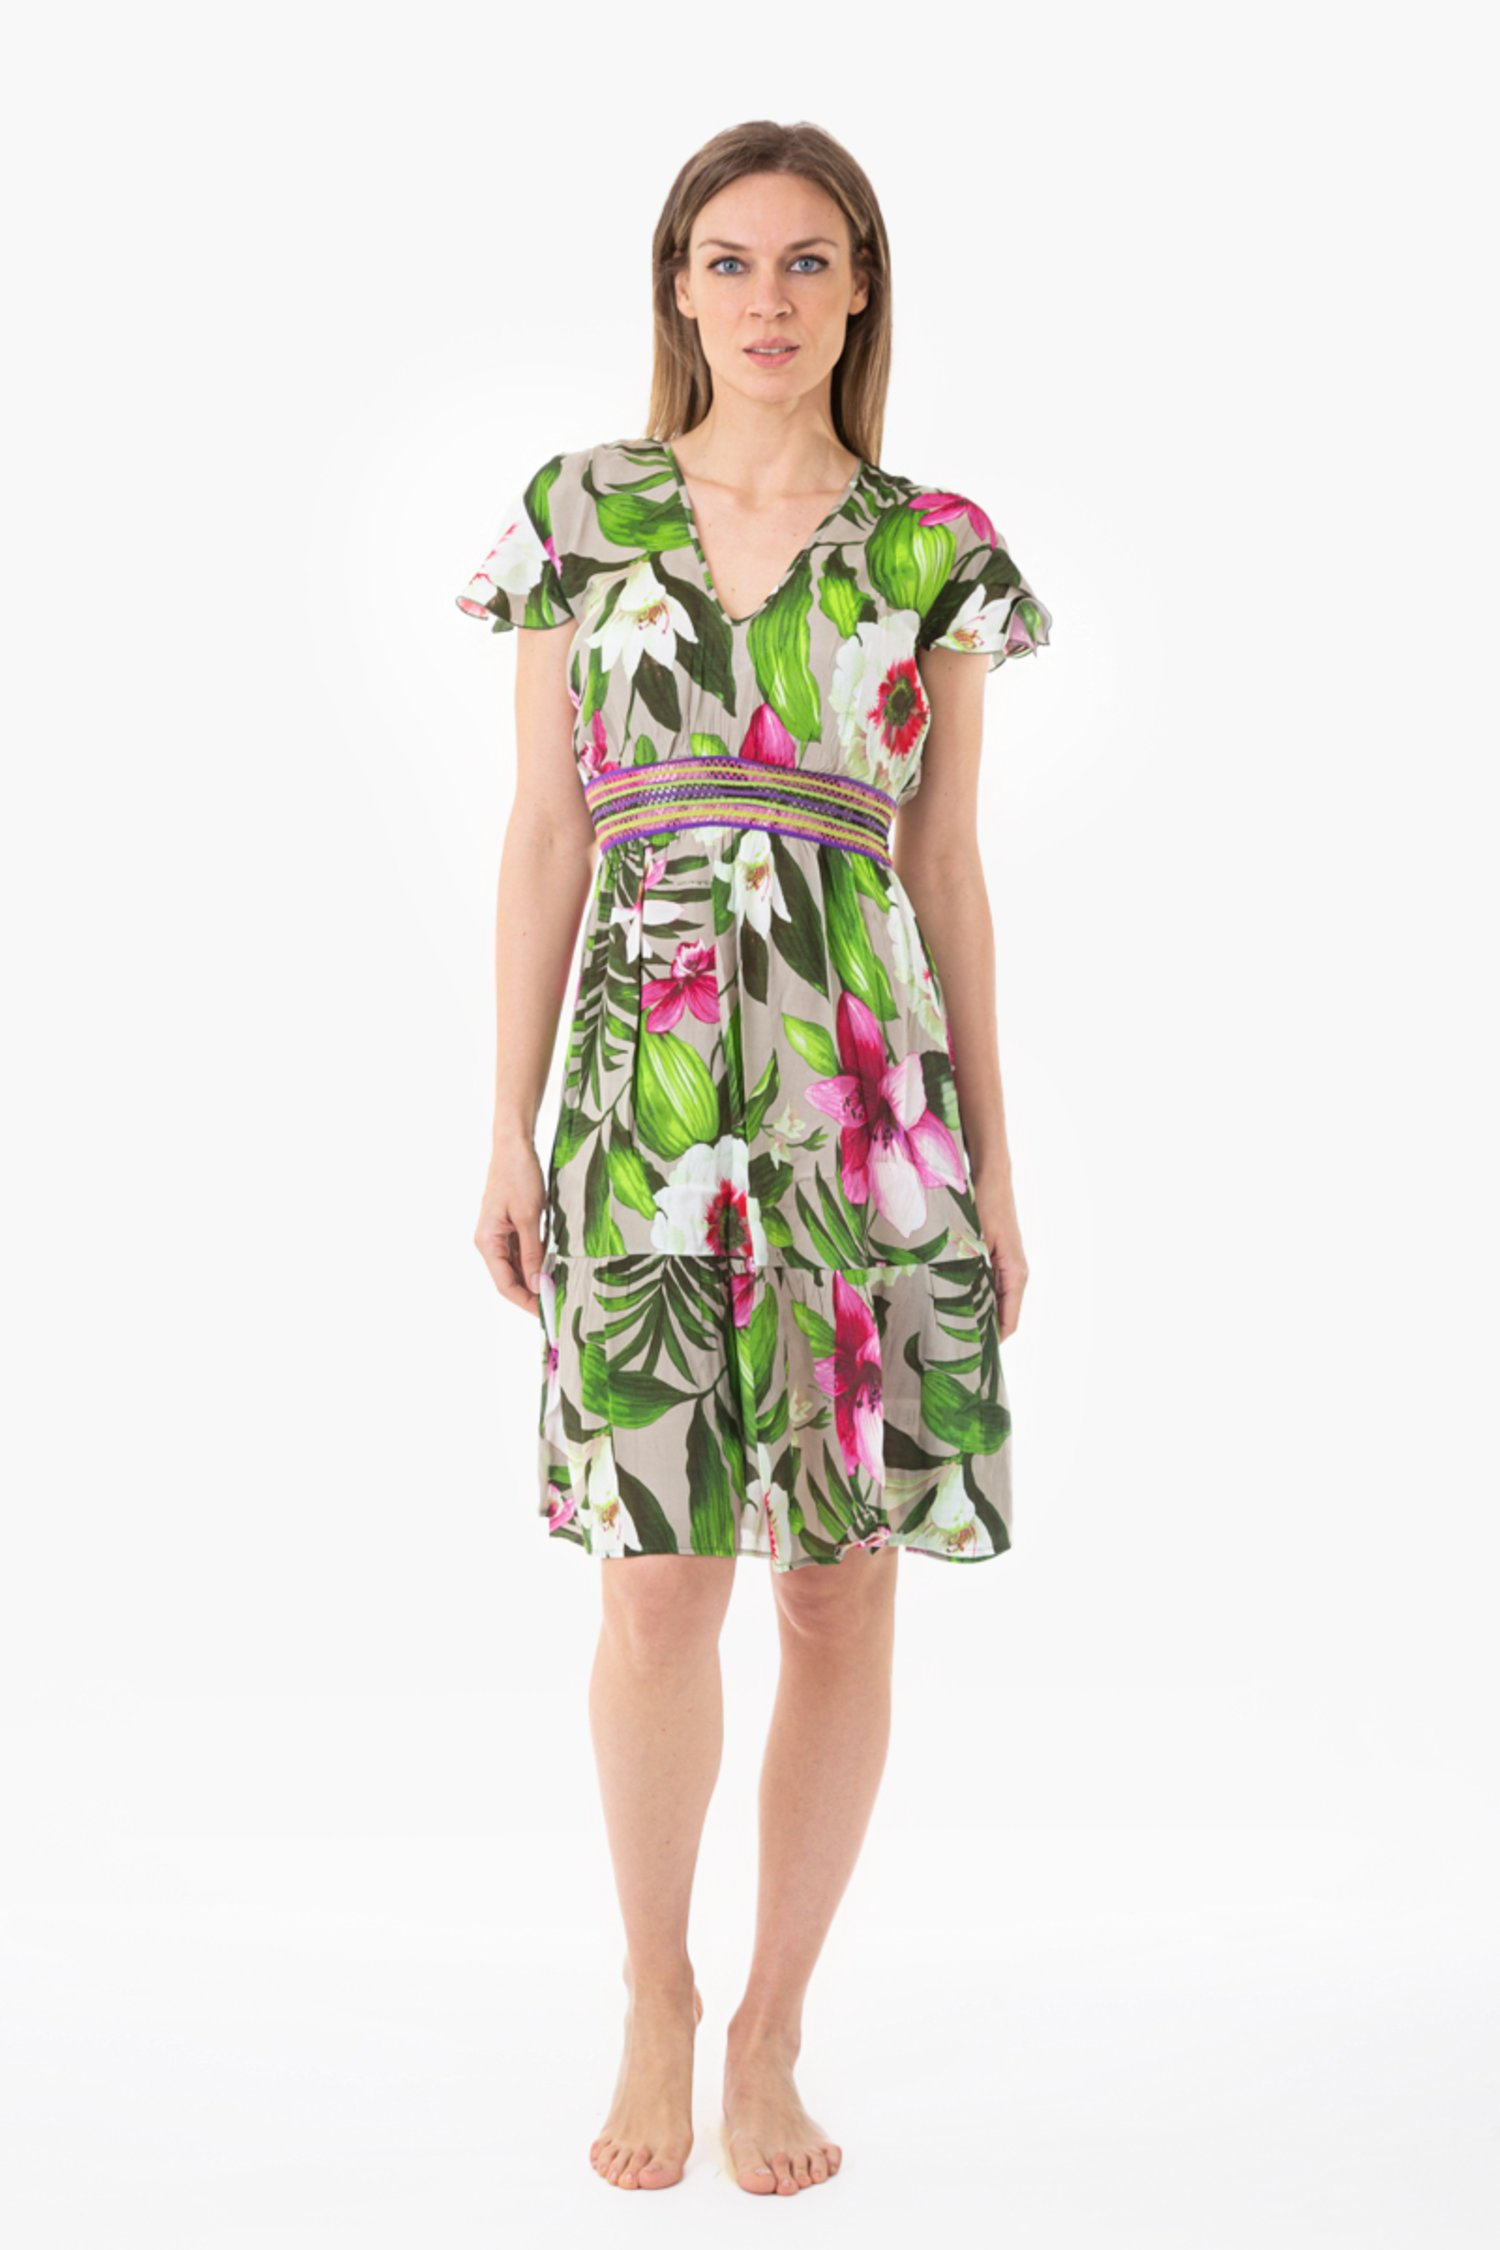 LONGUETTE DRESS TRIMMINGS - Tropical Flowers Beige